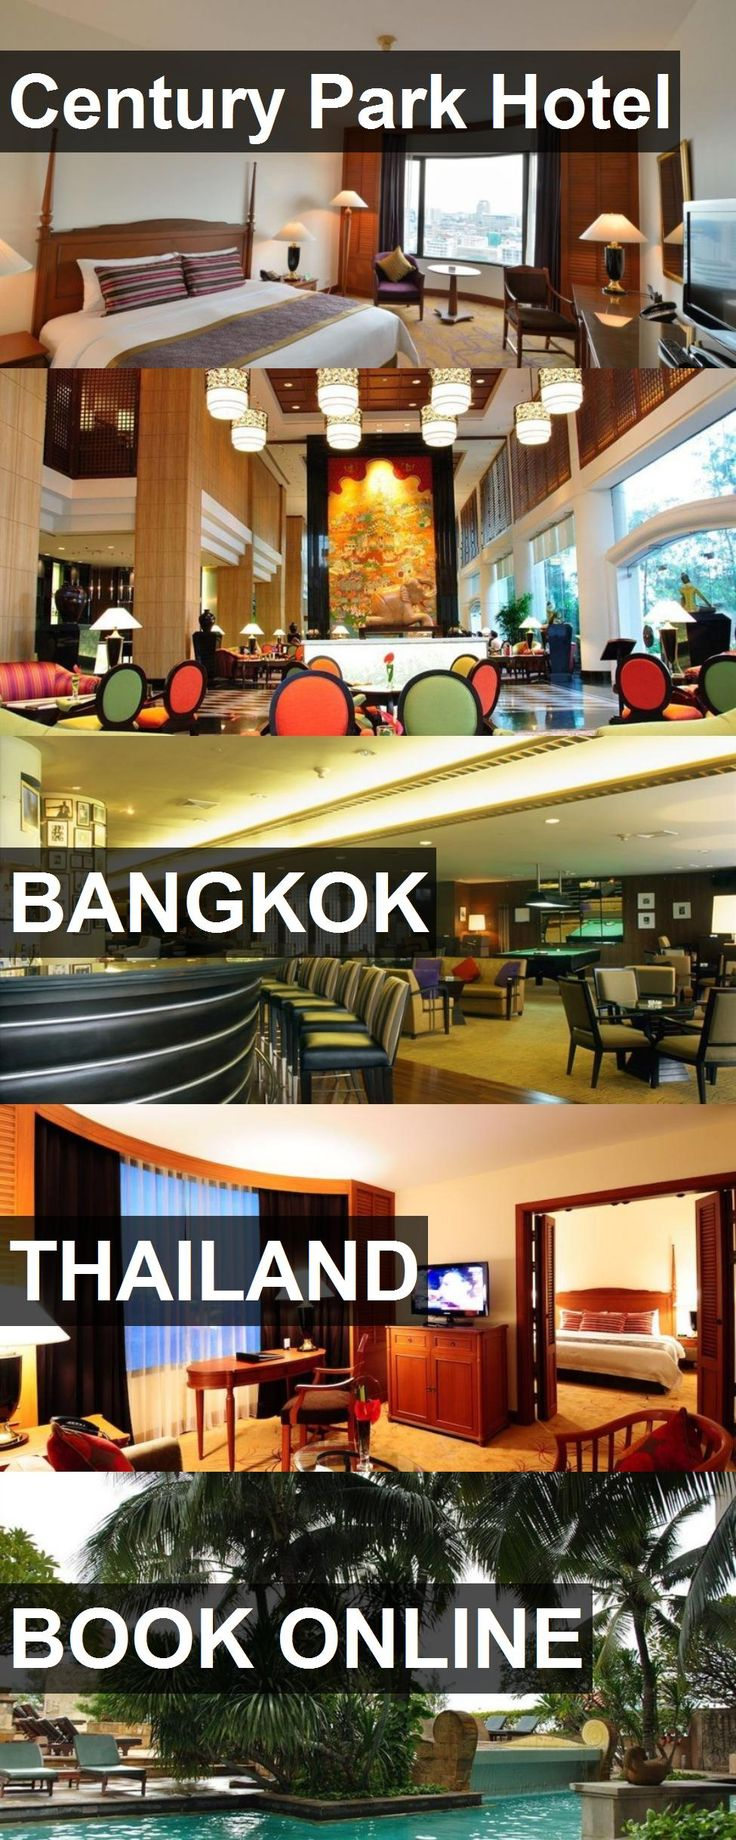 Hotel Century Park Hotel in Bangkok, Thailand. For more information, photos, reviews and best prices please follow the link. #Thailand #Bangkok #CenturyParkHotel #hotel #travel #vacation